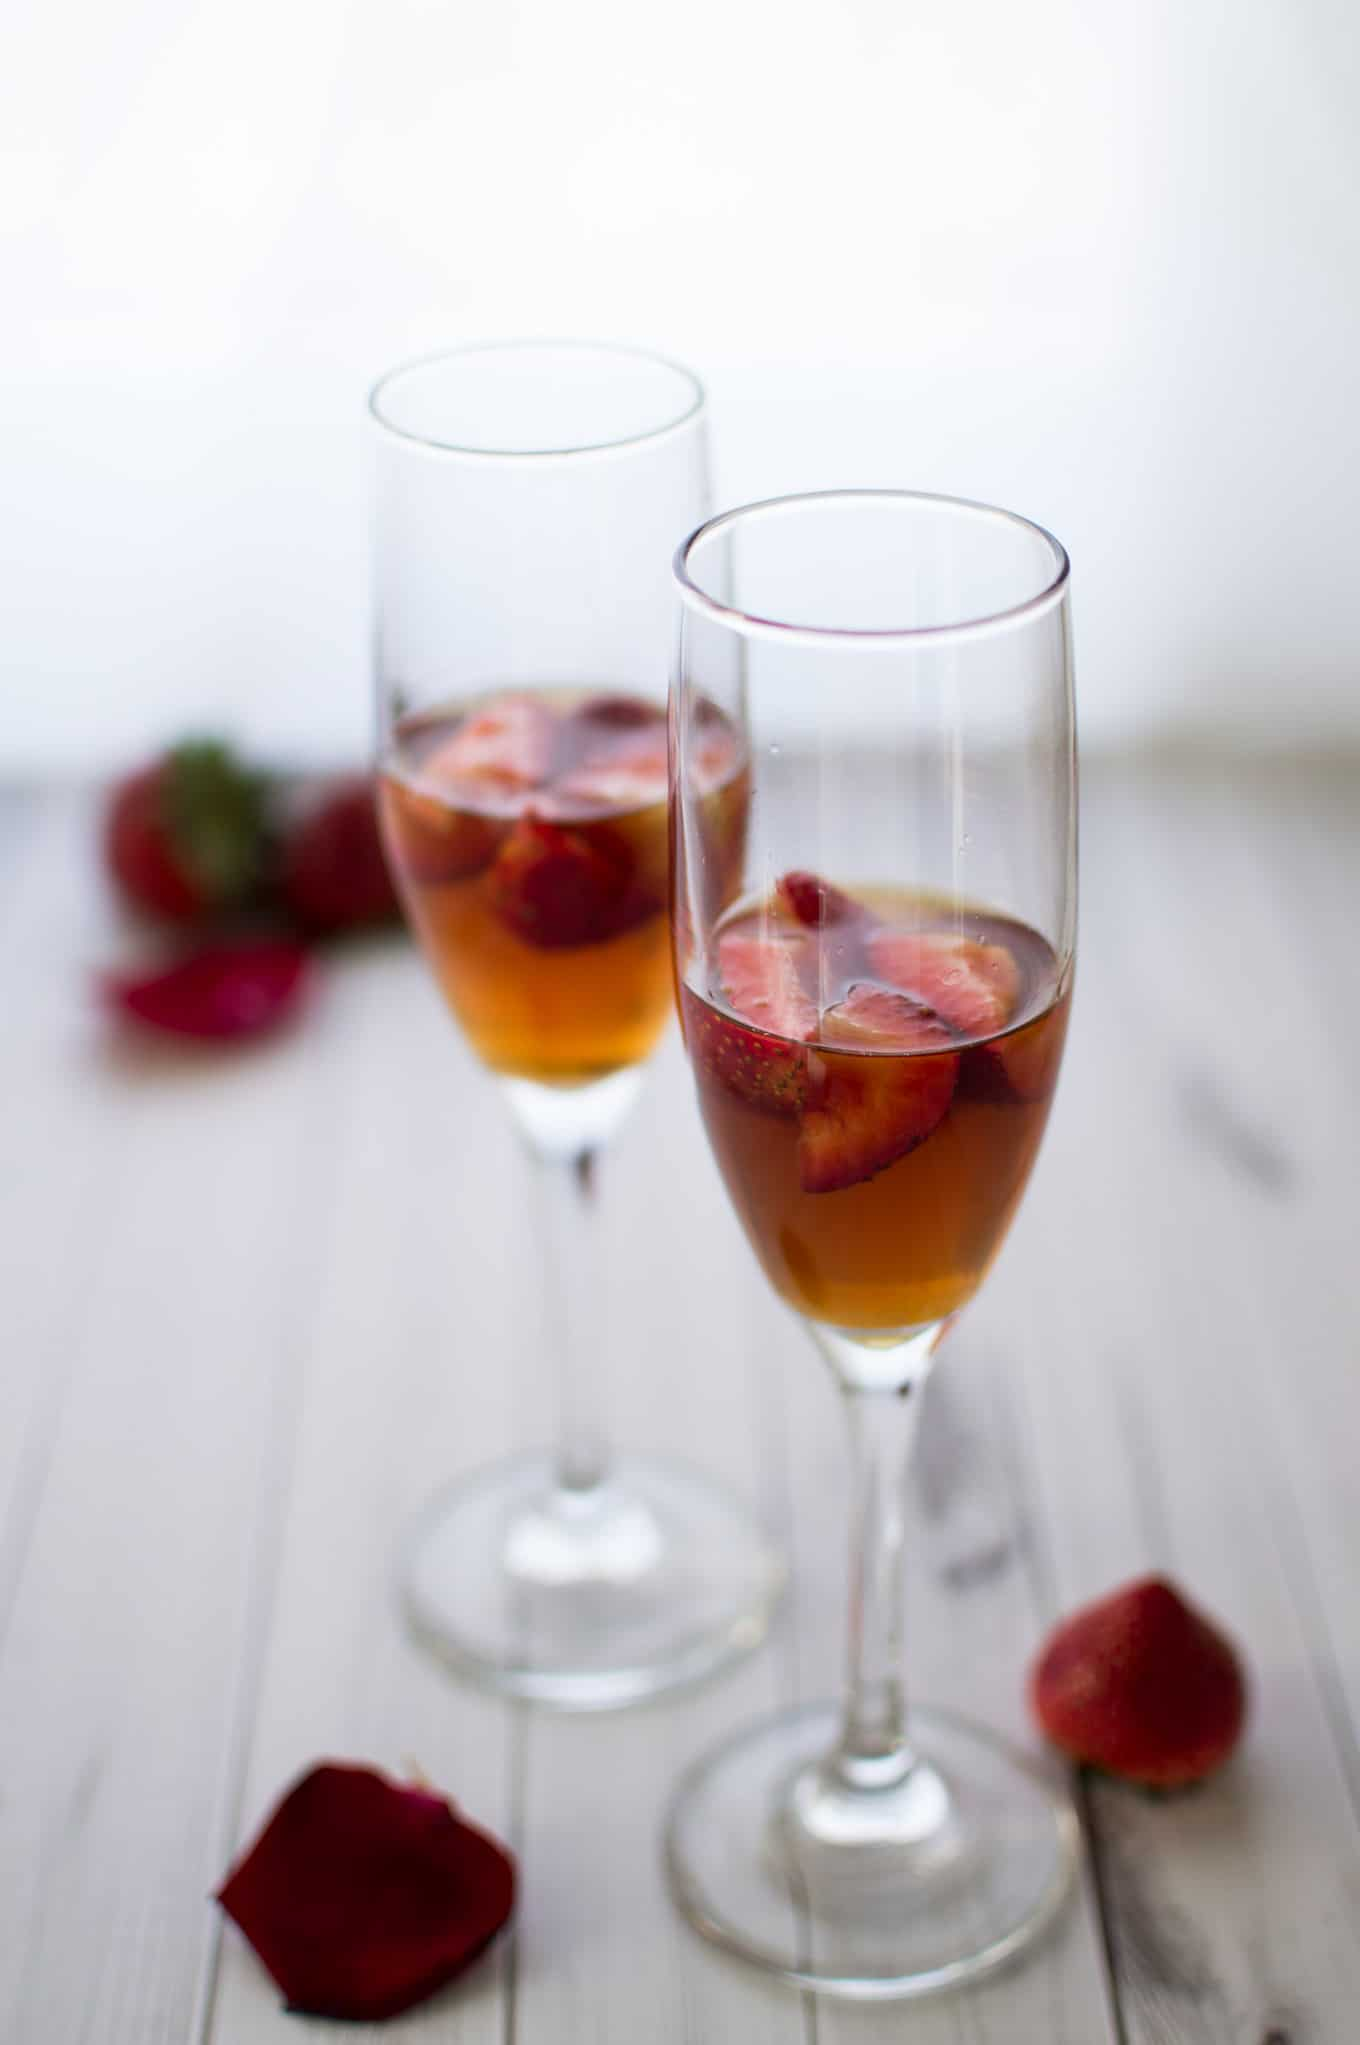 Close up of champagne glasses half-filled with strawberries and fig vodka.